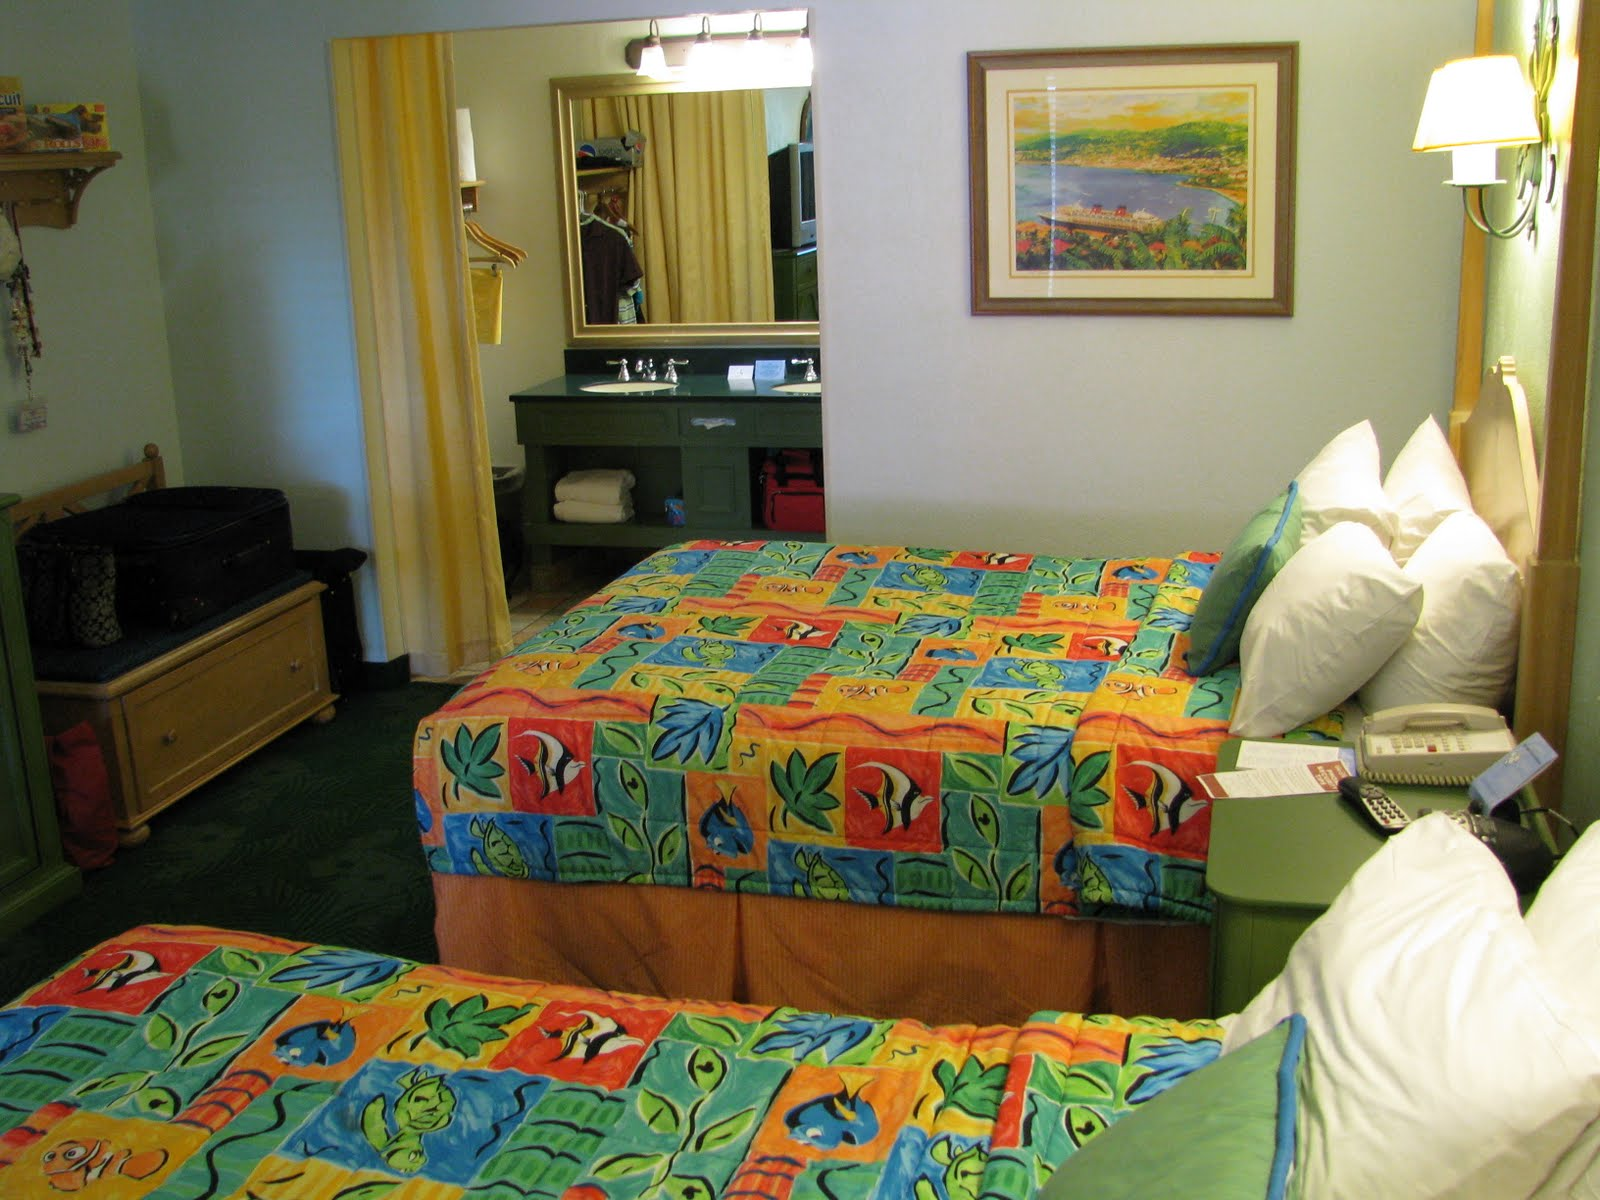 Up To 40 On Disney World Resort Rooms For Fall 2010